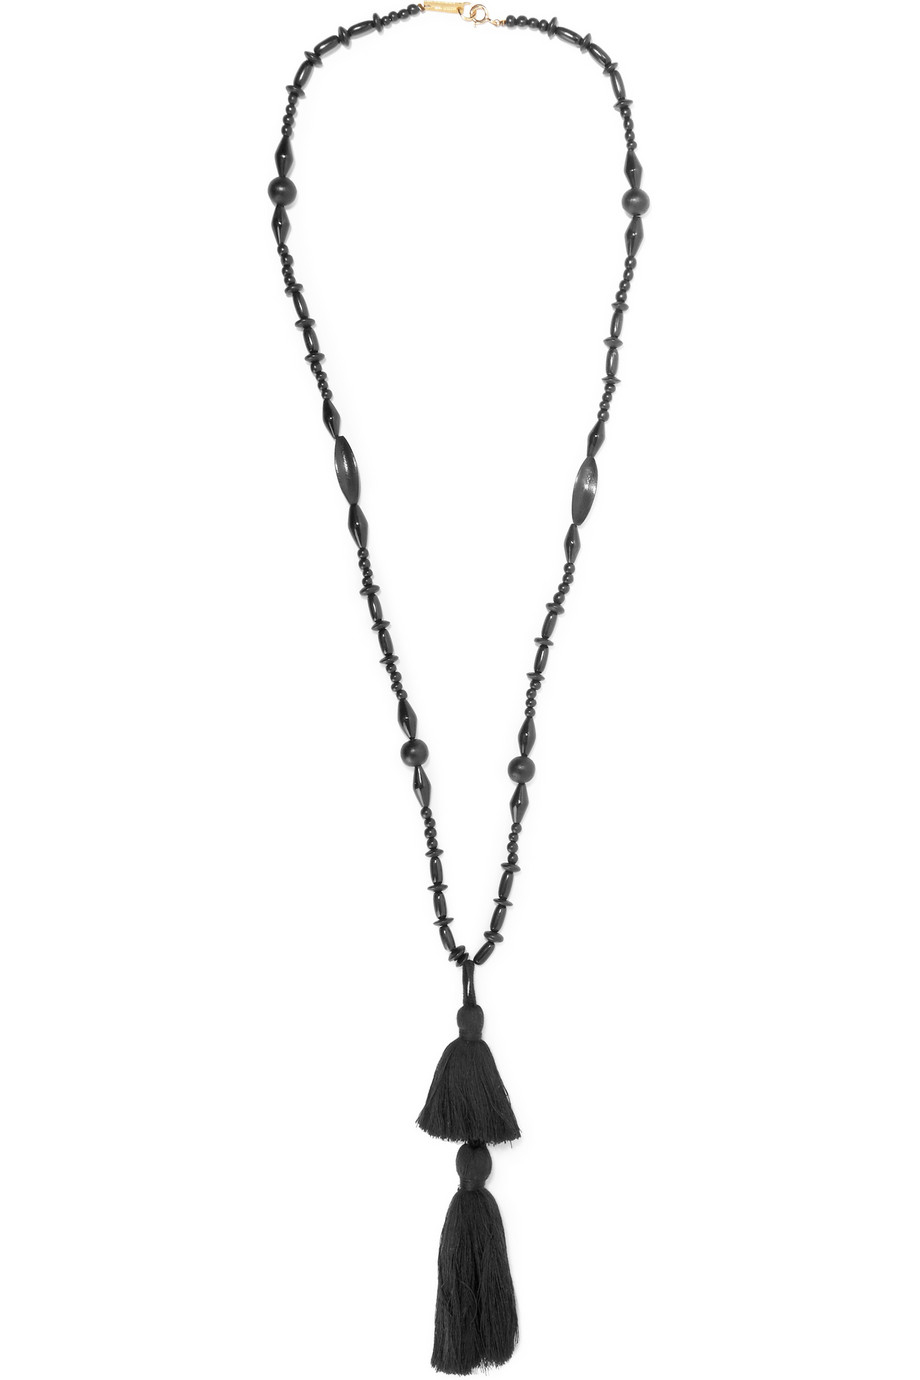 Isabel marant Berbere Tasseled Horn And Wood Necklace in